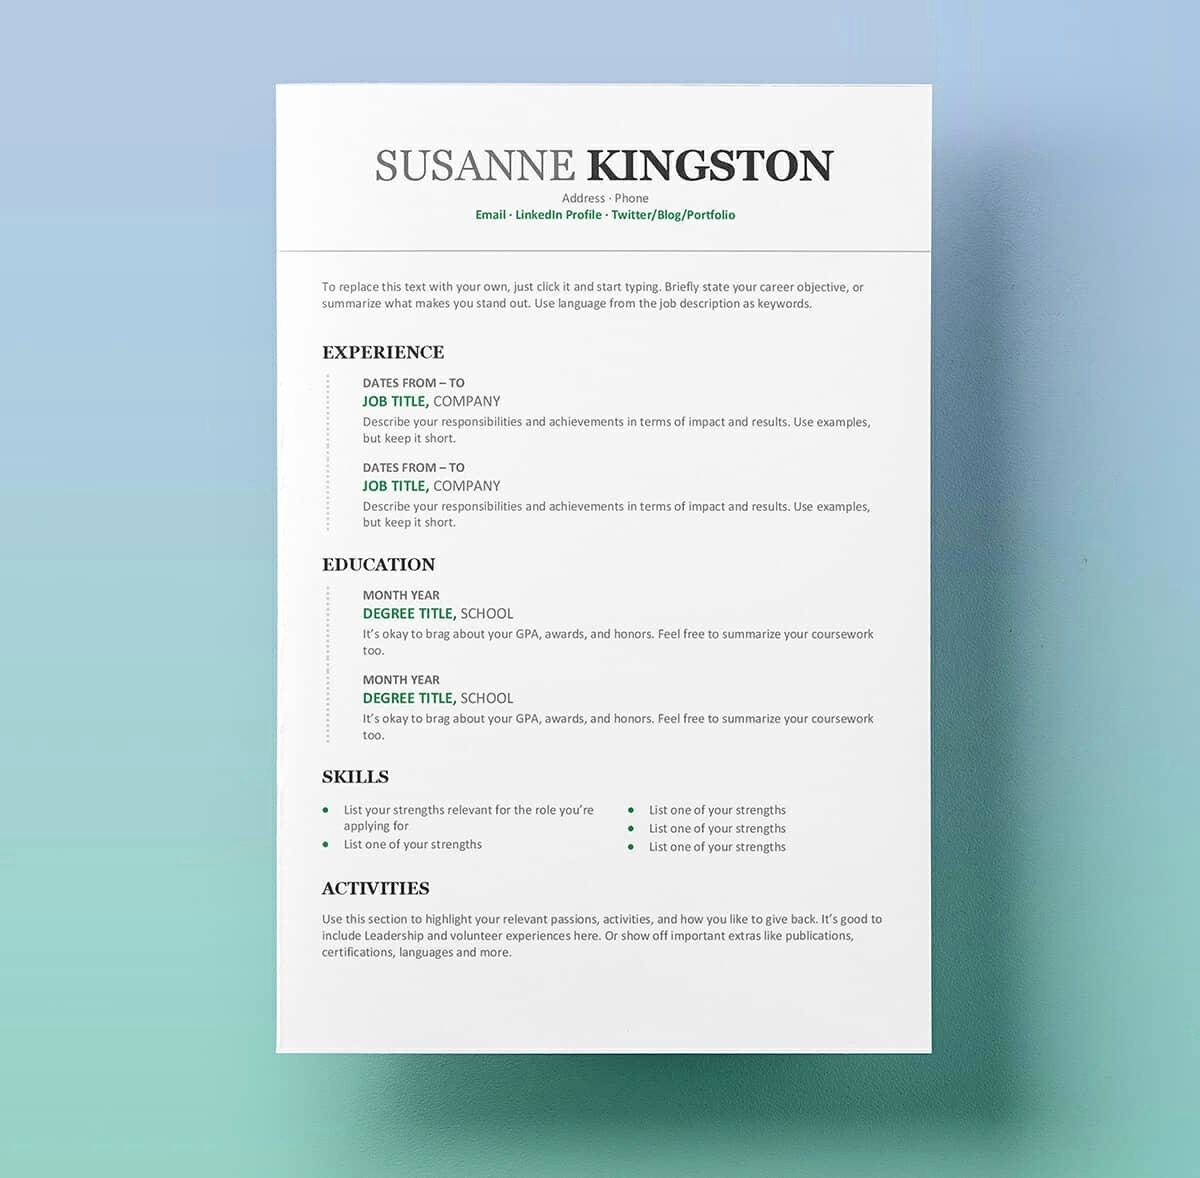 Professional Resume Template Microsoft Word Lovely Resume Templates for Word Free 15 Examples for Download